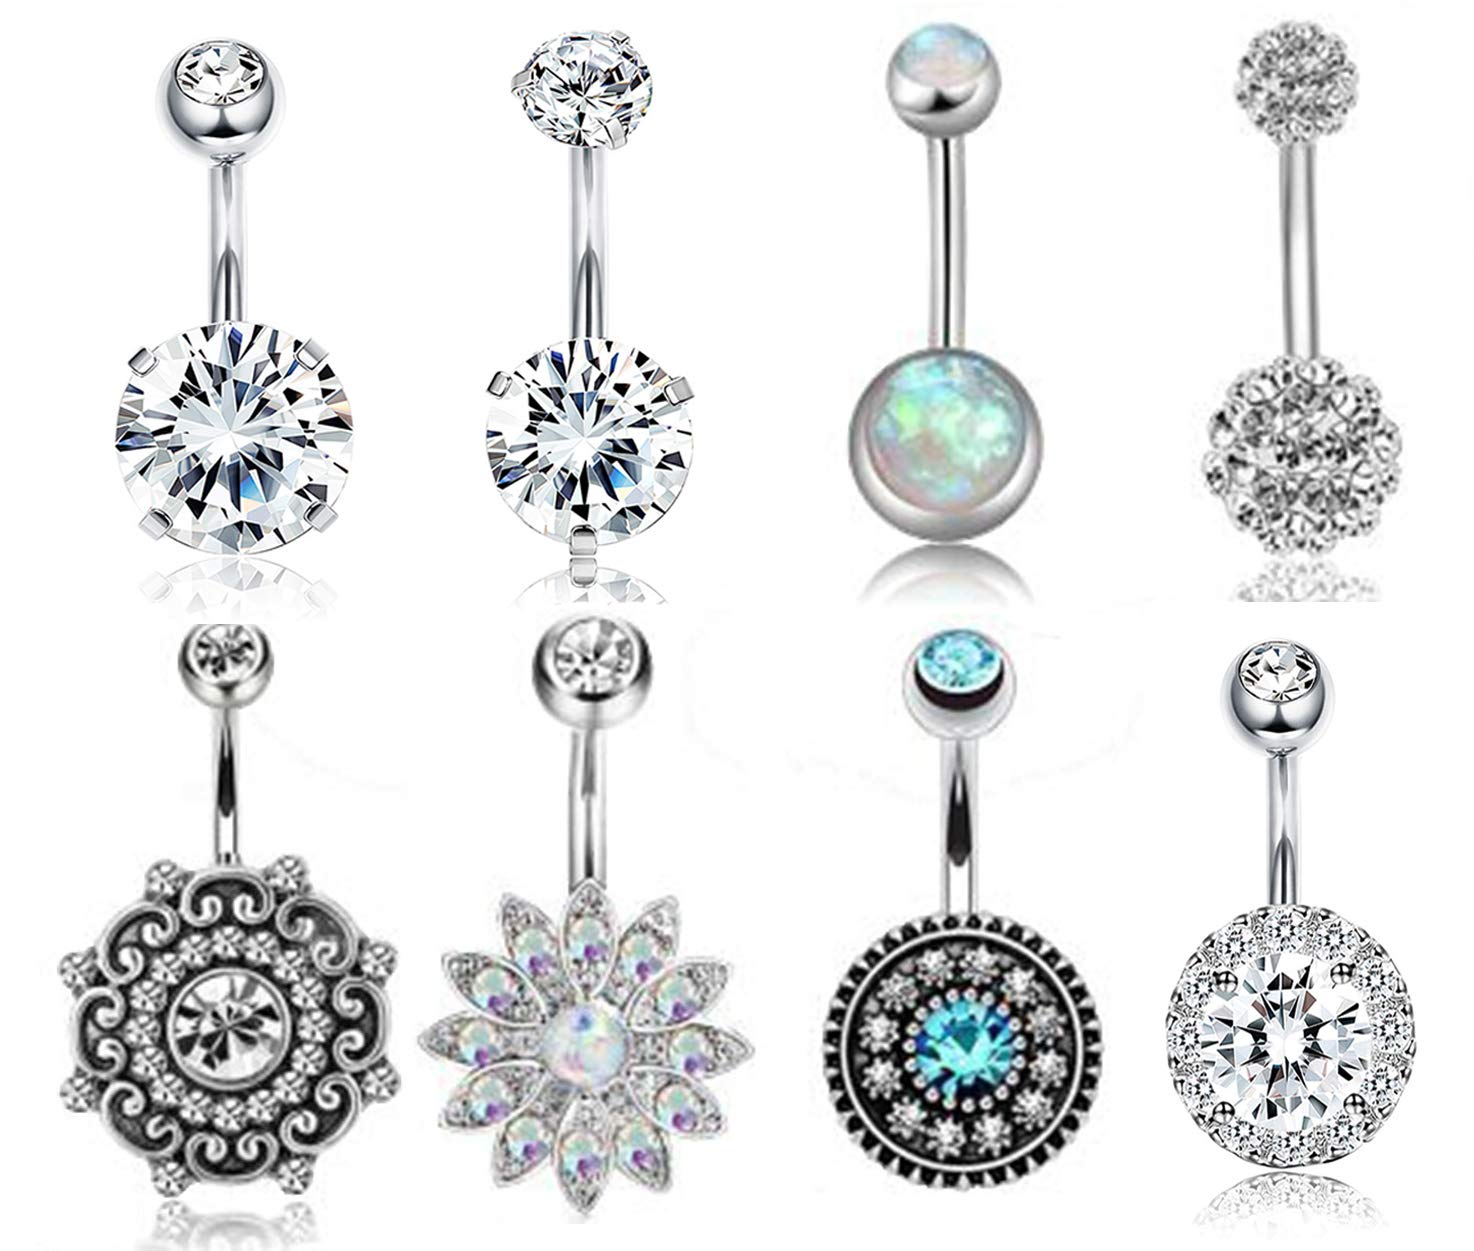 FIBO STEEL 8-12 Pcs Dangle Belly Button Rings for Women Navel Barbell Body Jewelry Piercing 14G Opal CZ Inlaid